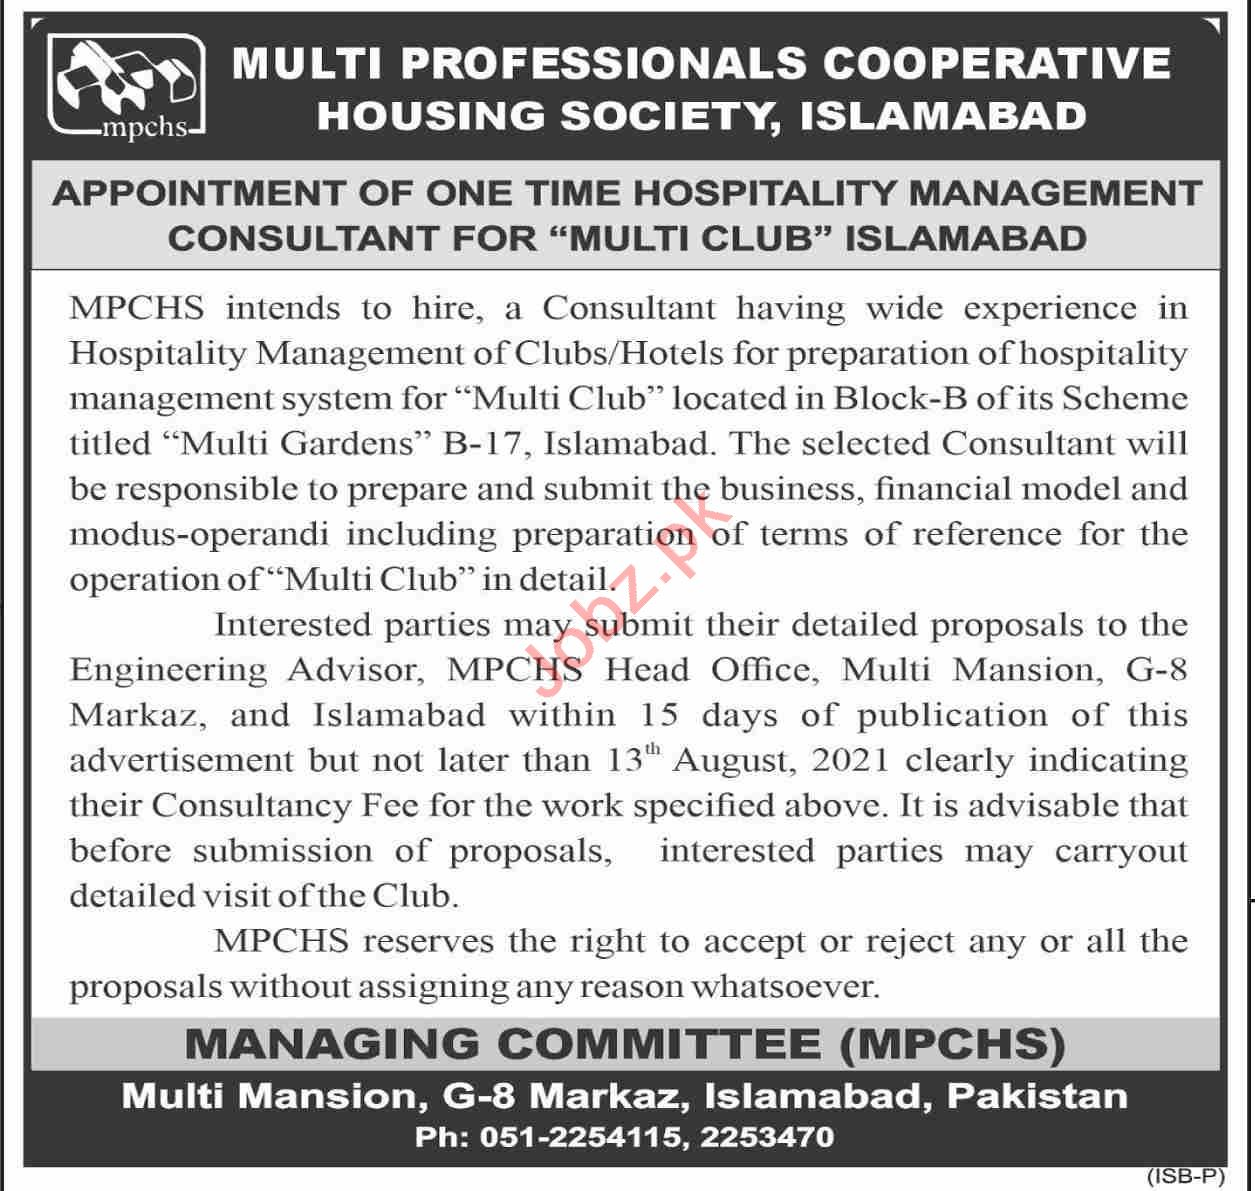 Multi Professional Cooperative Housing Society MPCHS Jobs